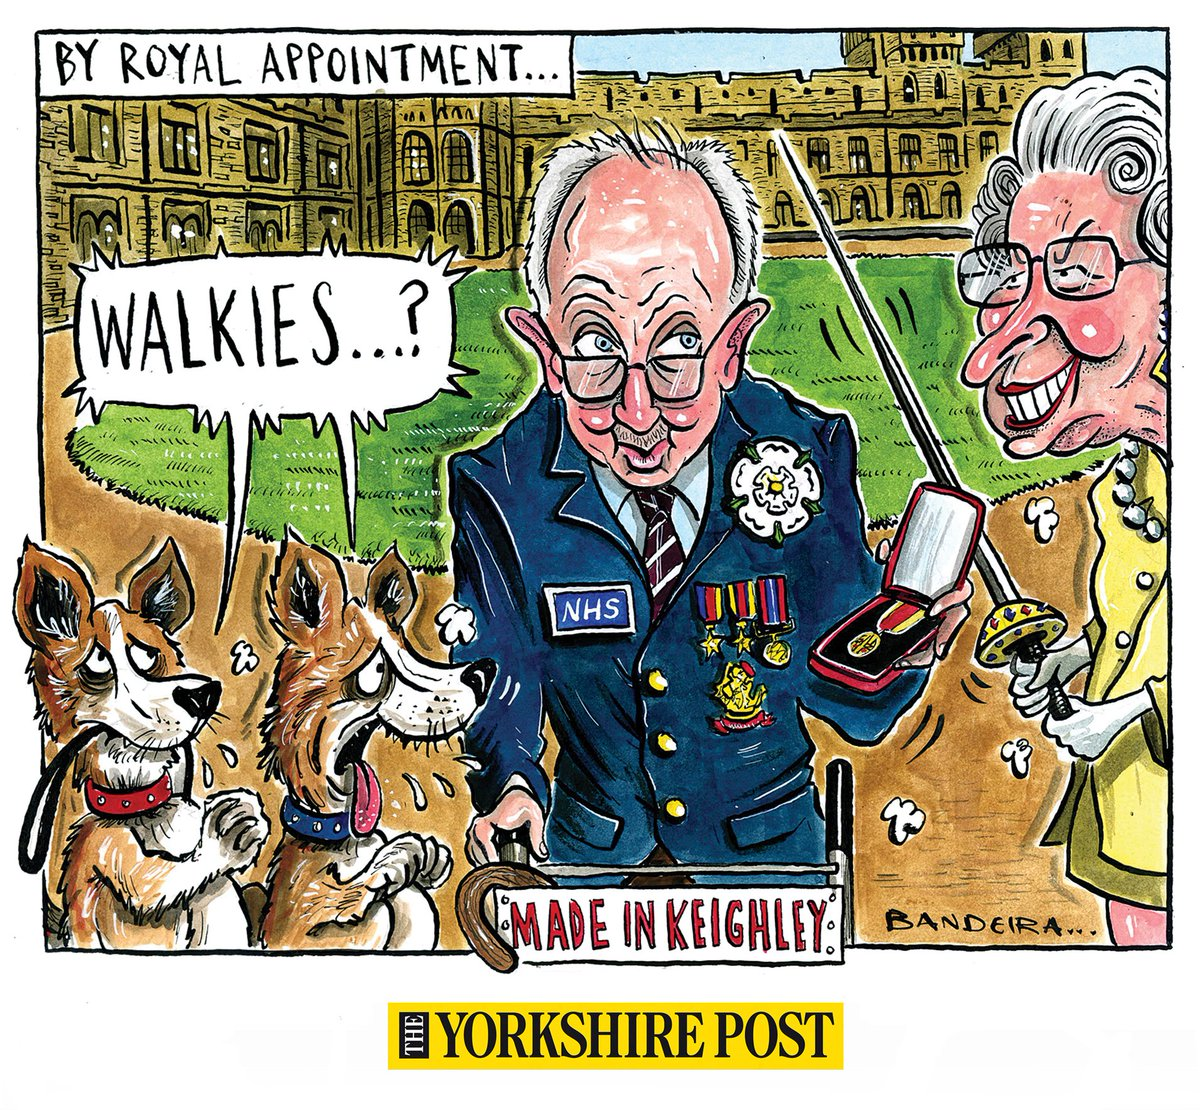 ARISE SIR TOM! Tomorrows @yorkshirepost cartoon given early release! Exceptional circumstances 😉